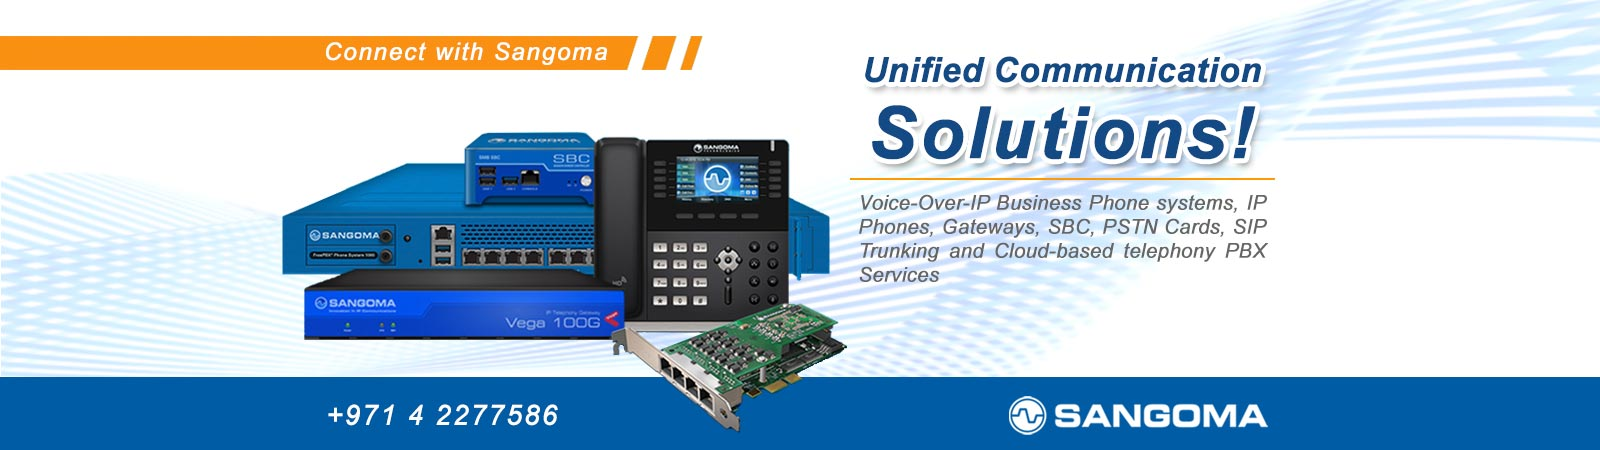 sangoma - Unified - Communication - Solutions